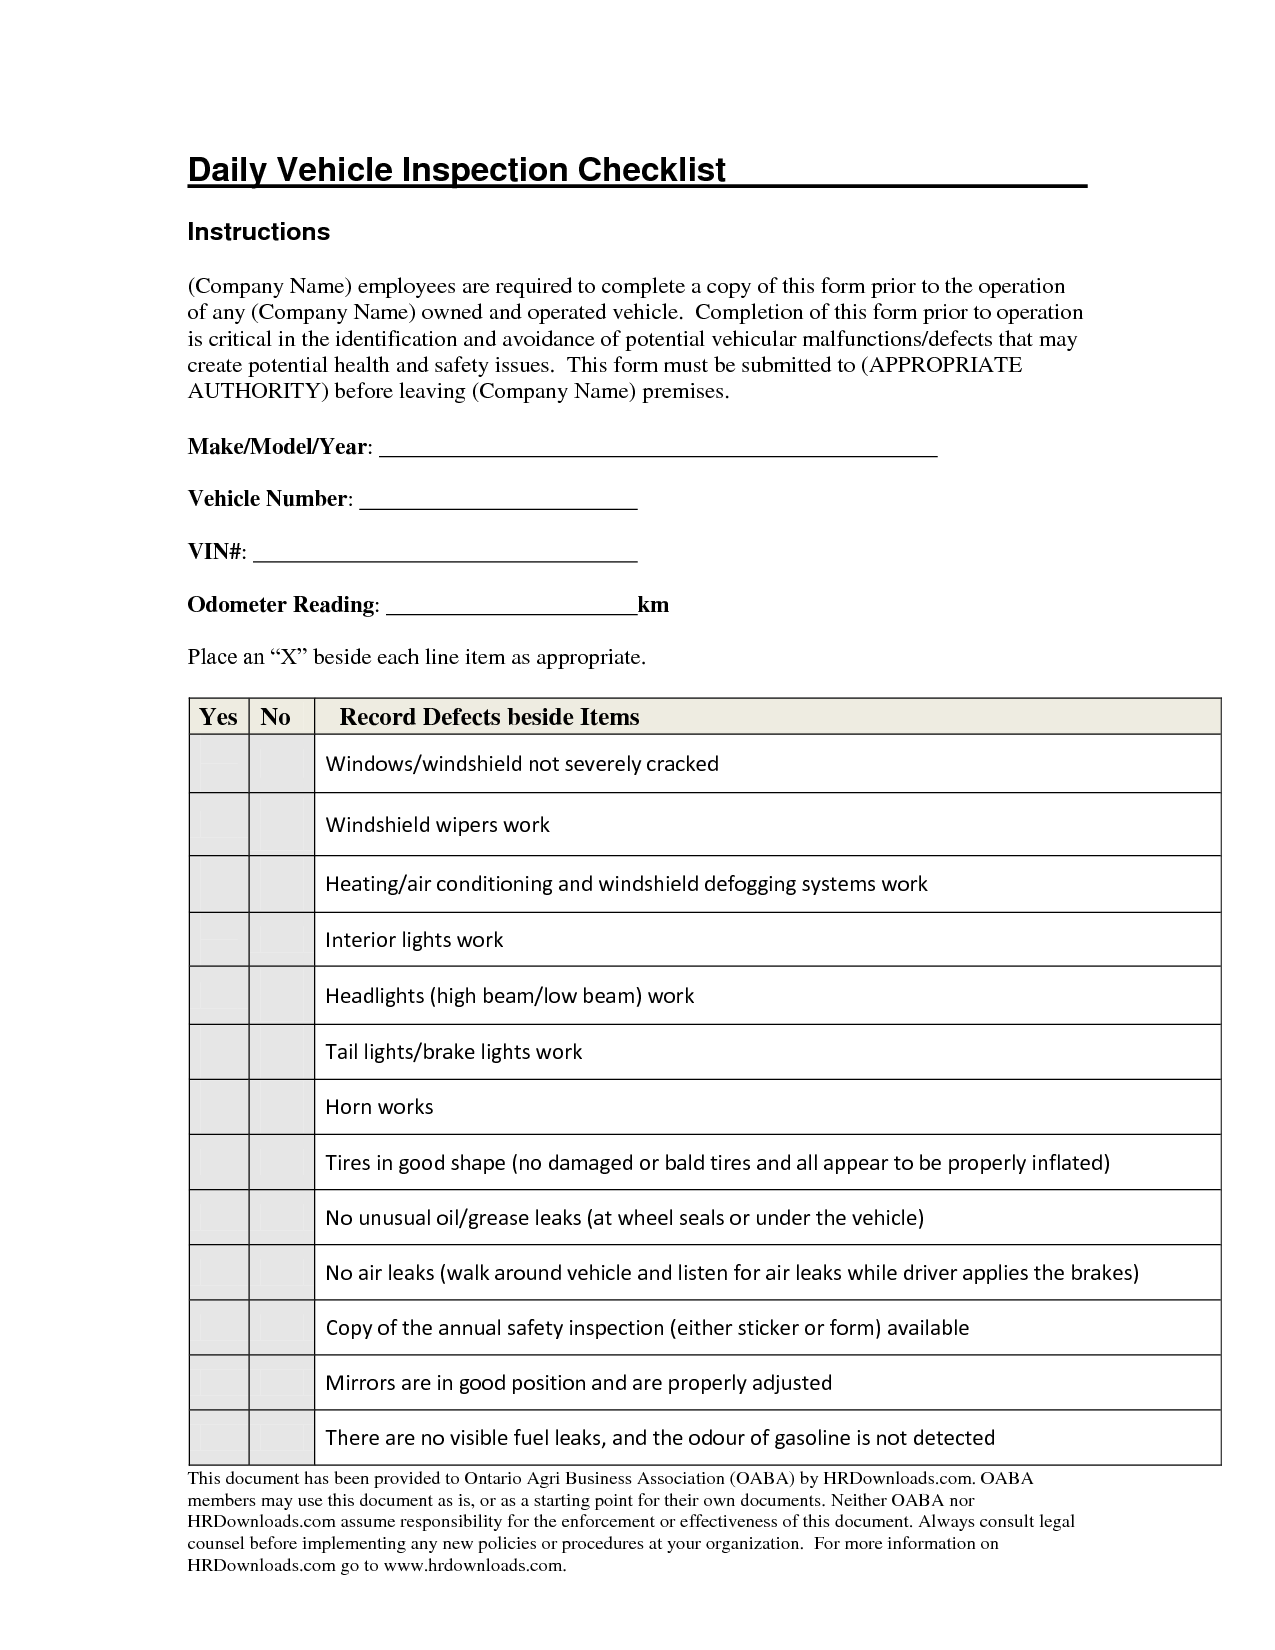 Daily vehicle inspection checklist form image gallery for Van checklist template